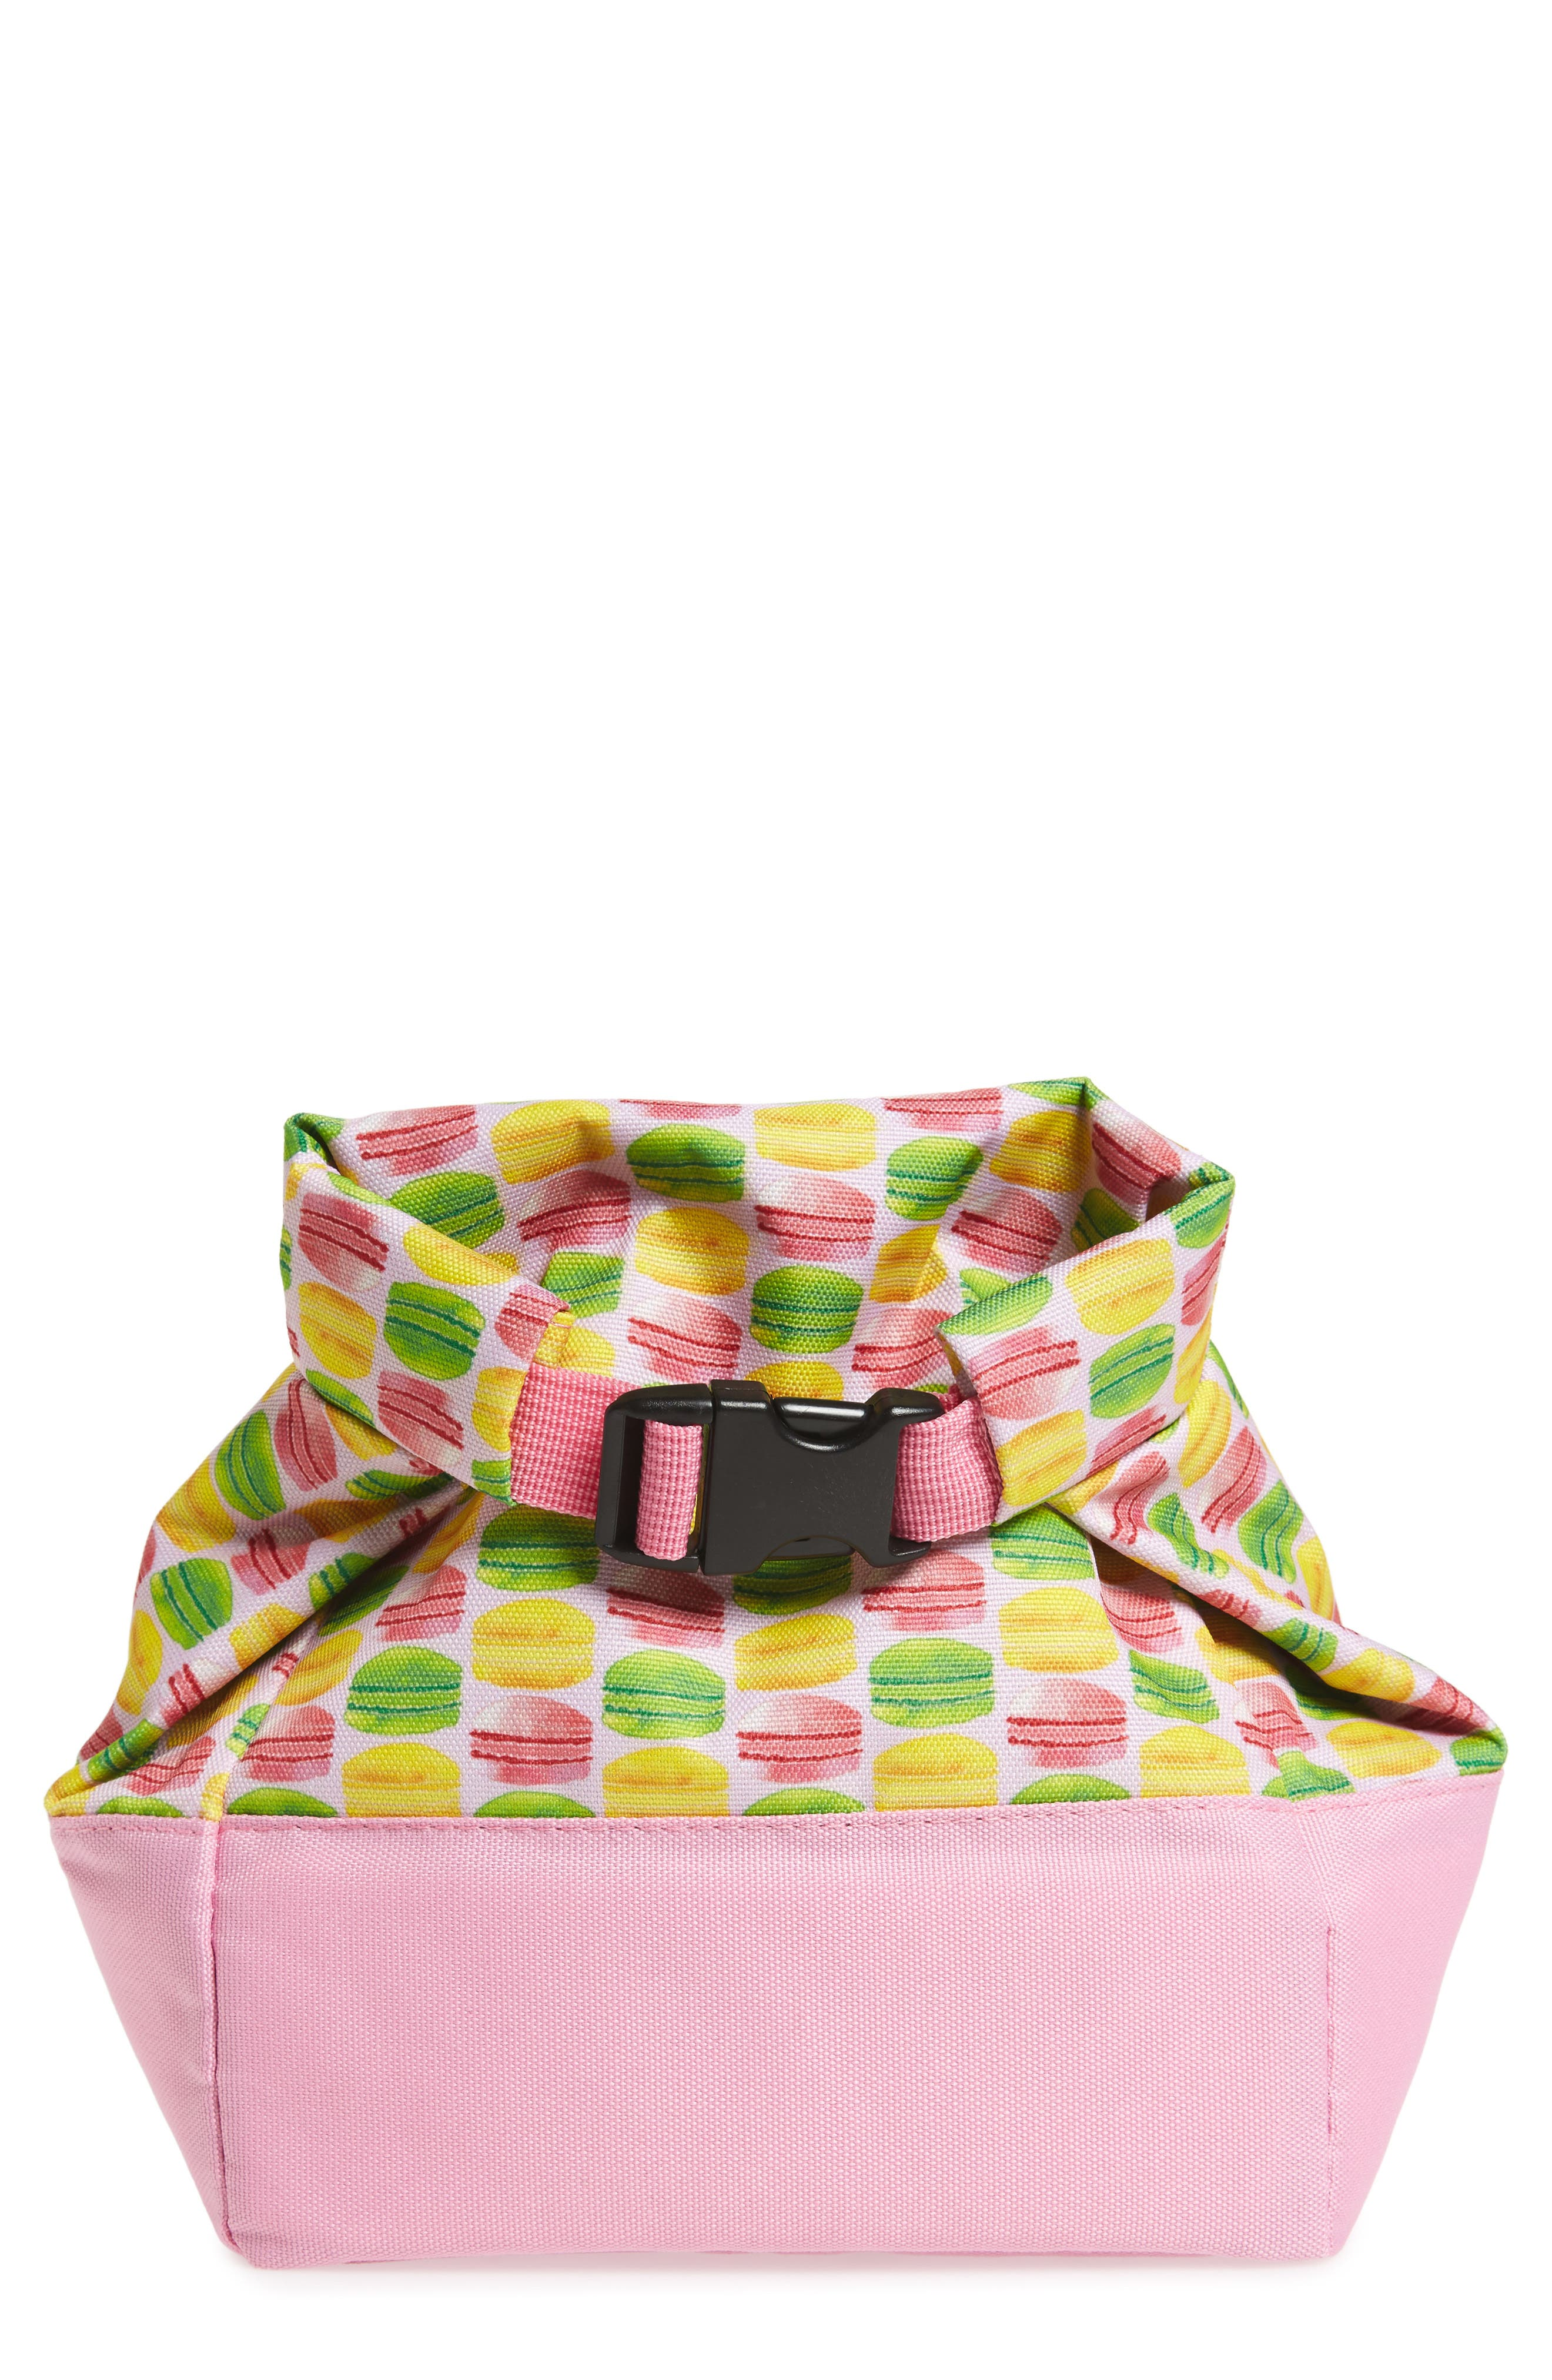 Macaron Print Roll Top Lunch Bag,                             Main thumbnail 1, color,                             680